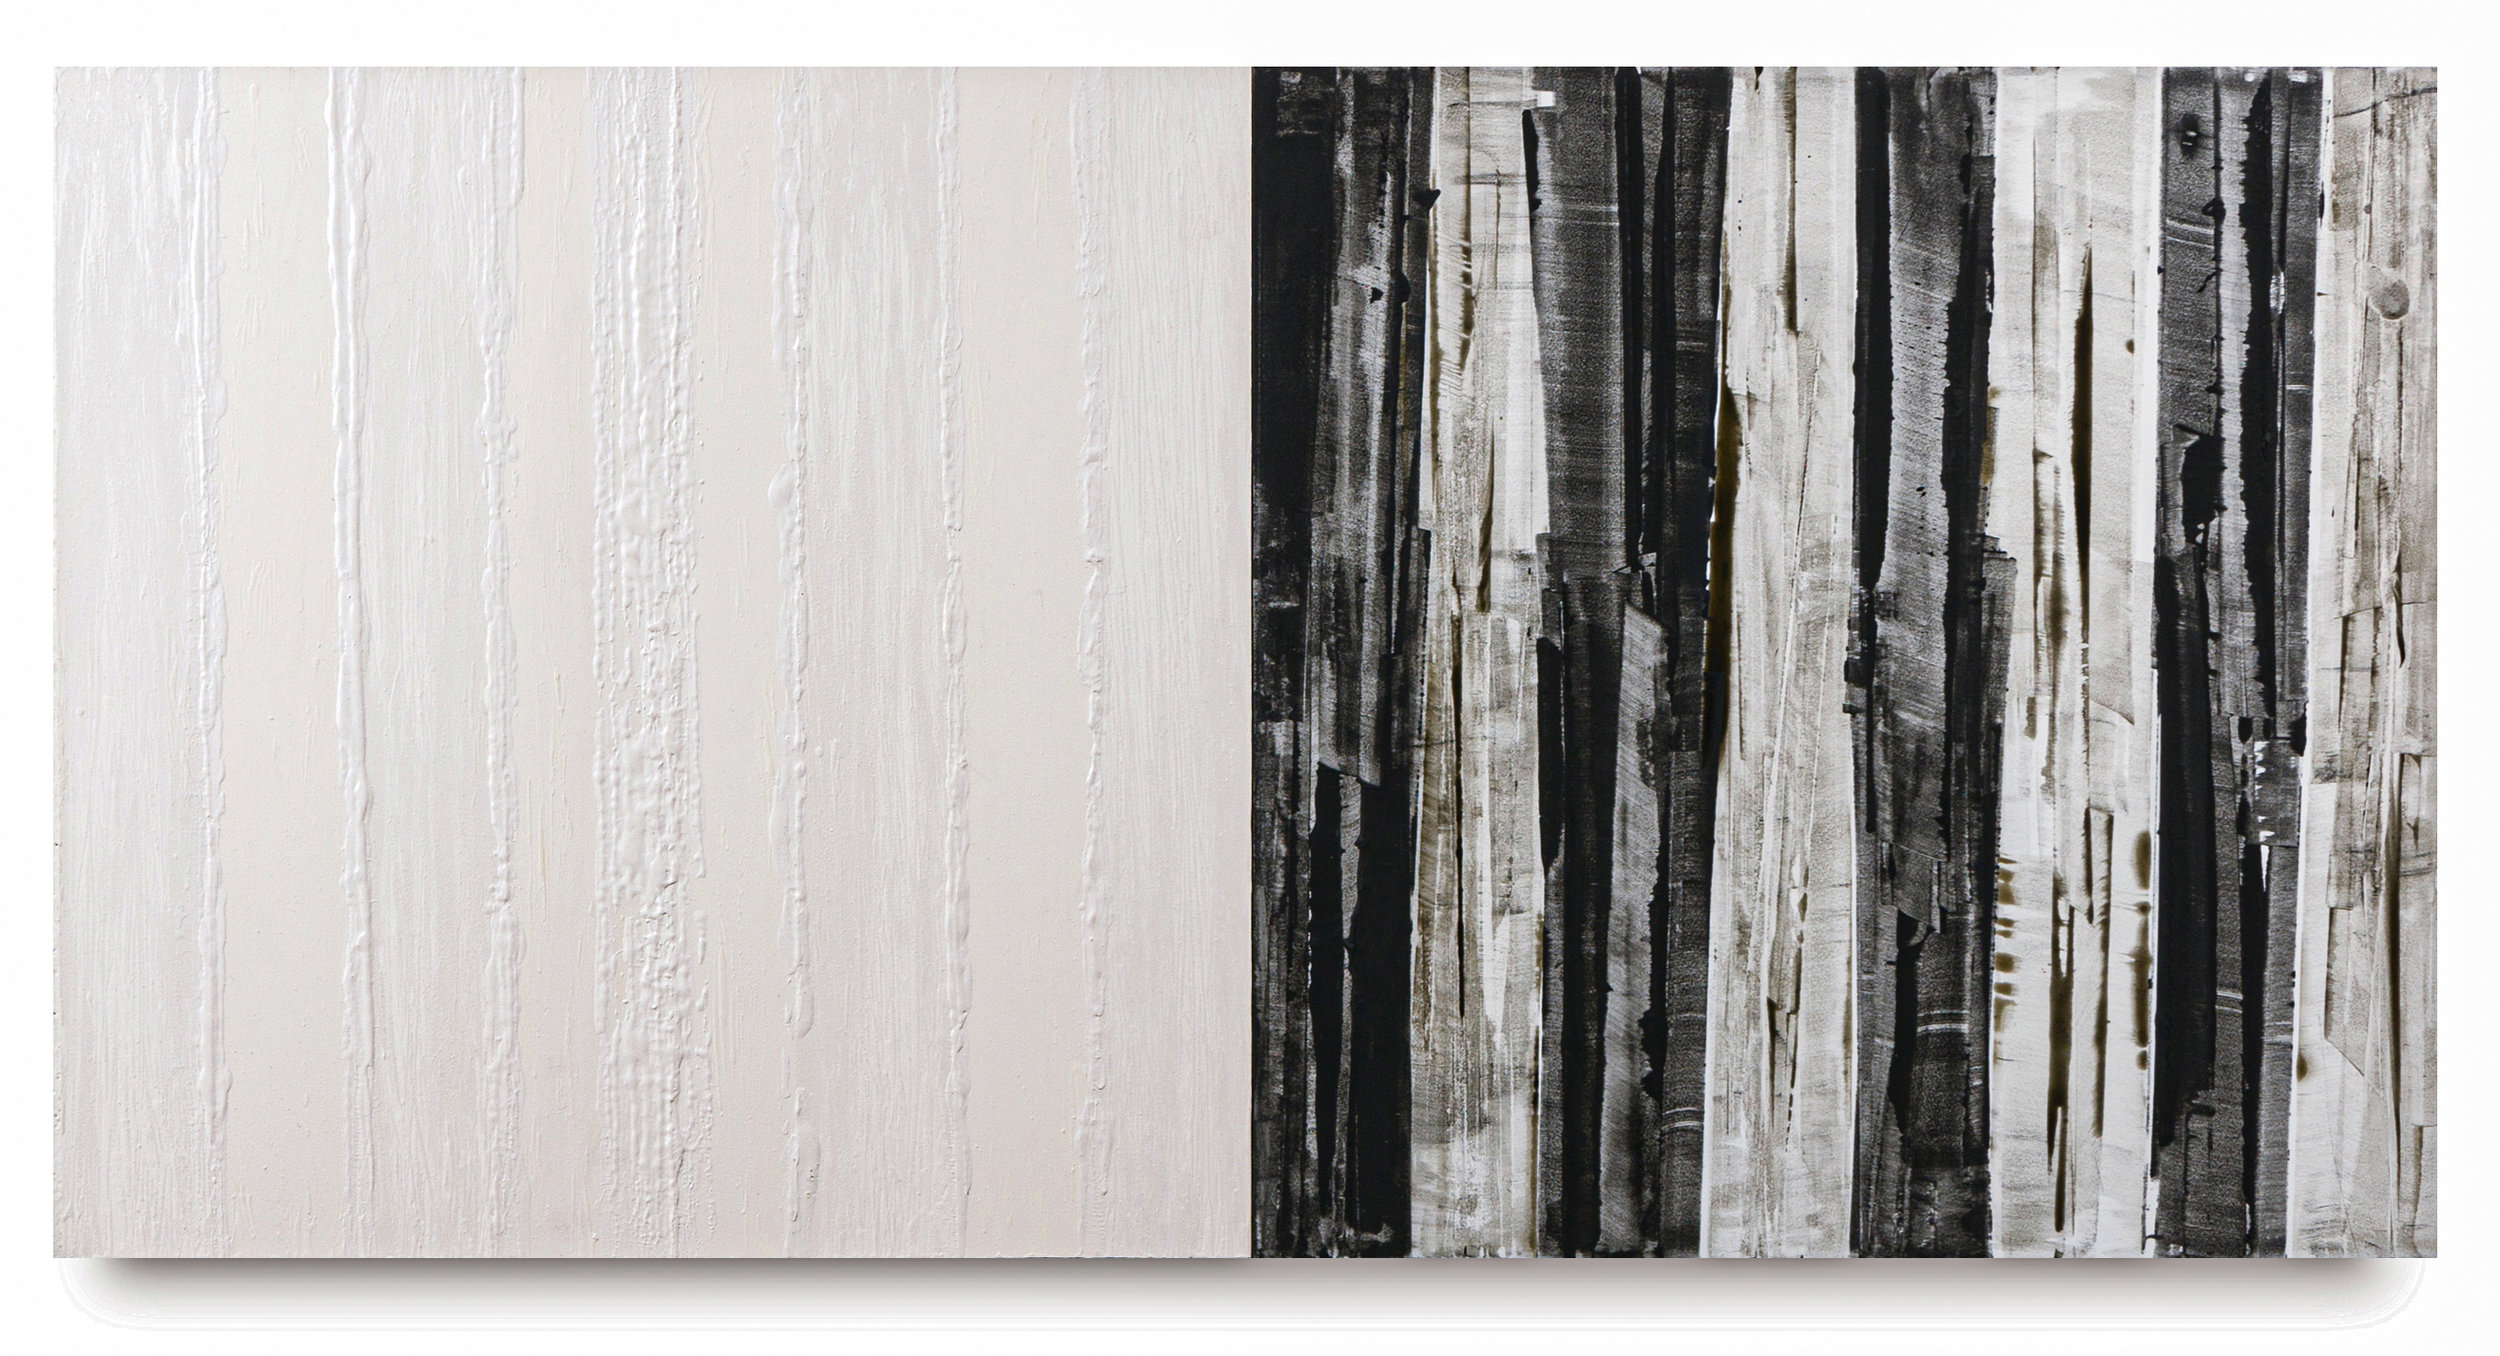 Two Tone, 2012